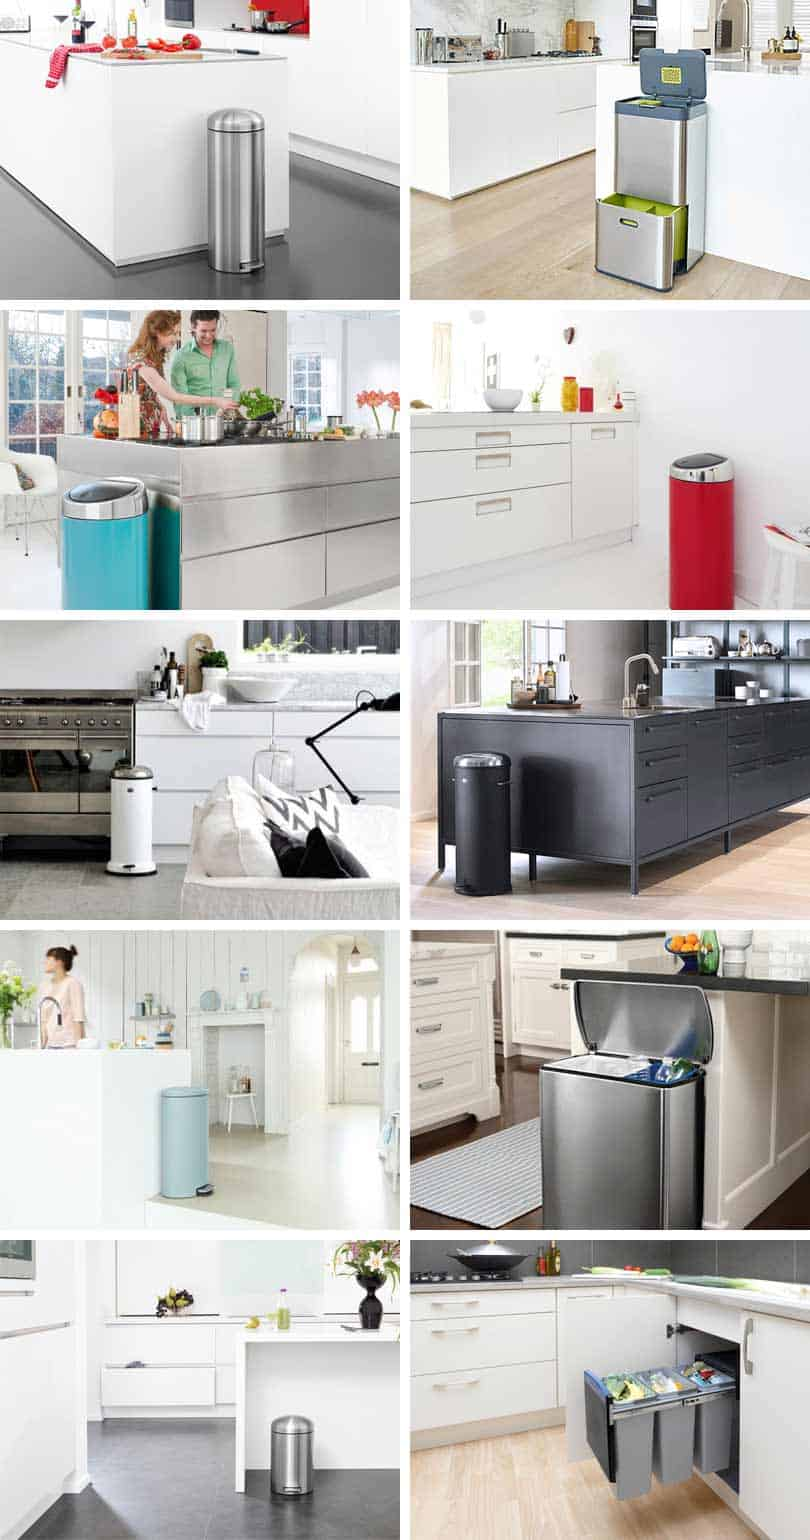 designer kitchen bins kitchen trash cans and recycling bins what to look for 3226